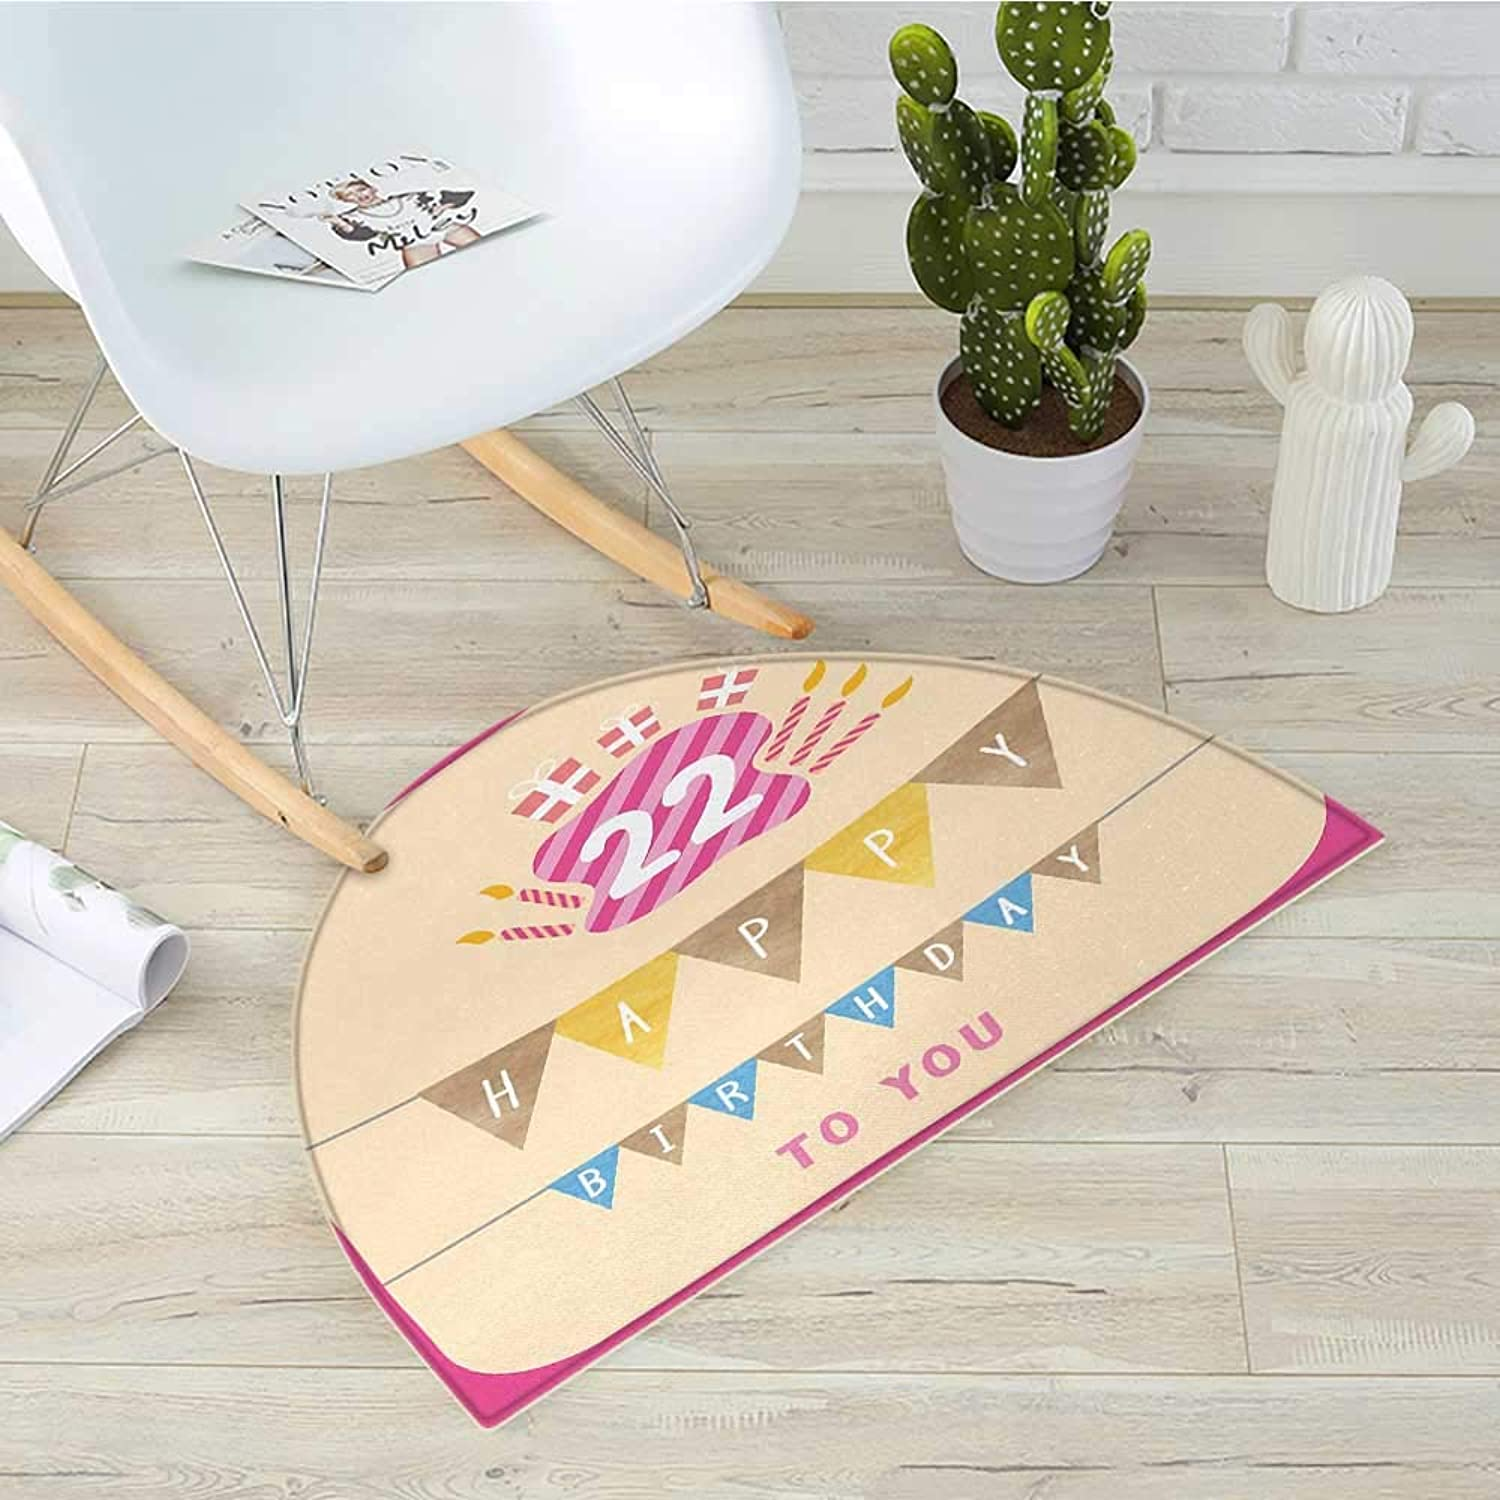 22nd Birthday Half Round Door mats Happy Birthday to You with Candies Cake and Candles Cute Design Print Bathroom Mat H 39.3  xD 59  Cream Hot Pink